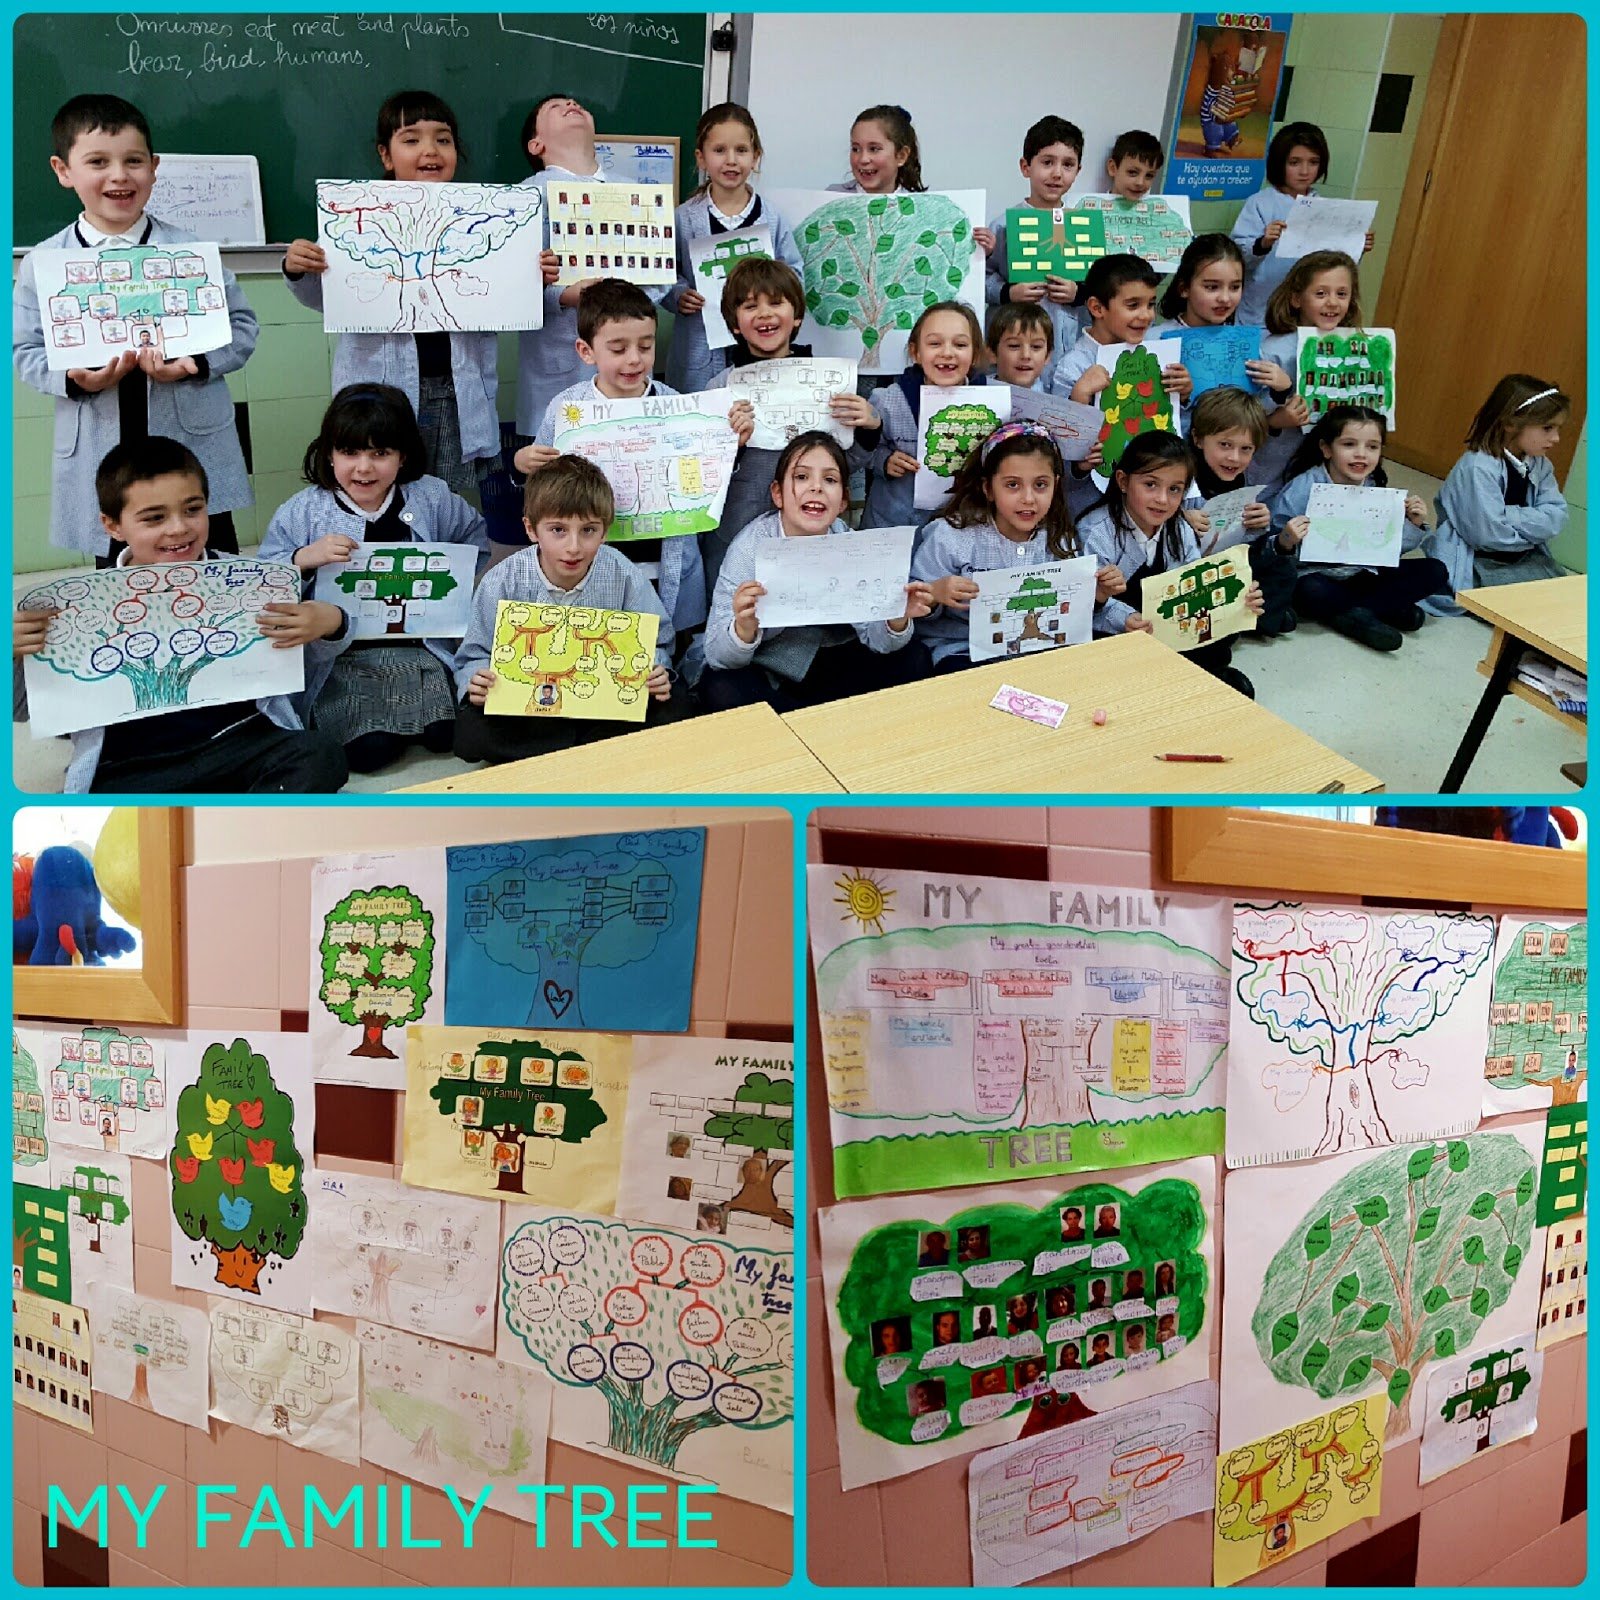 Agustinas Valladolid - 2017 - Primaria 1 - My Family Tree 1